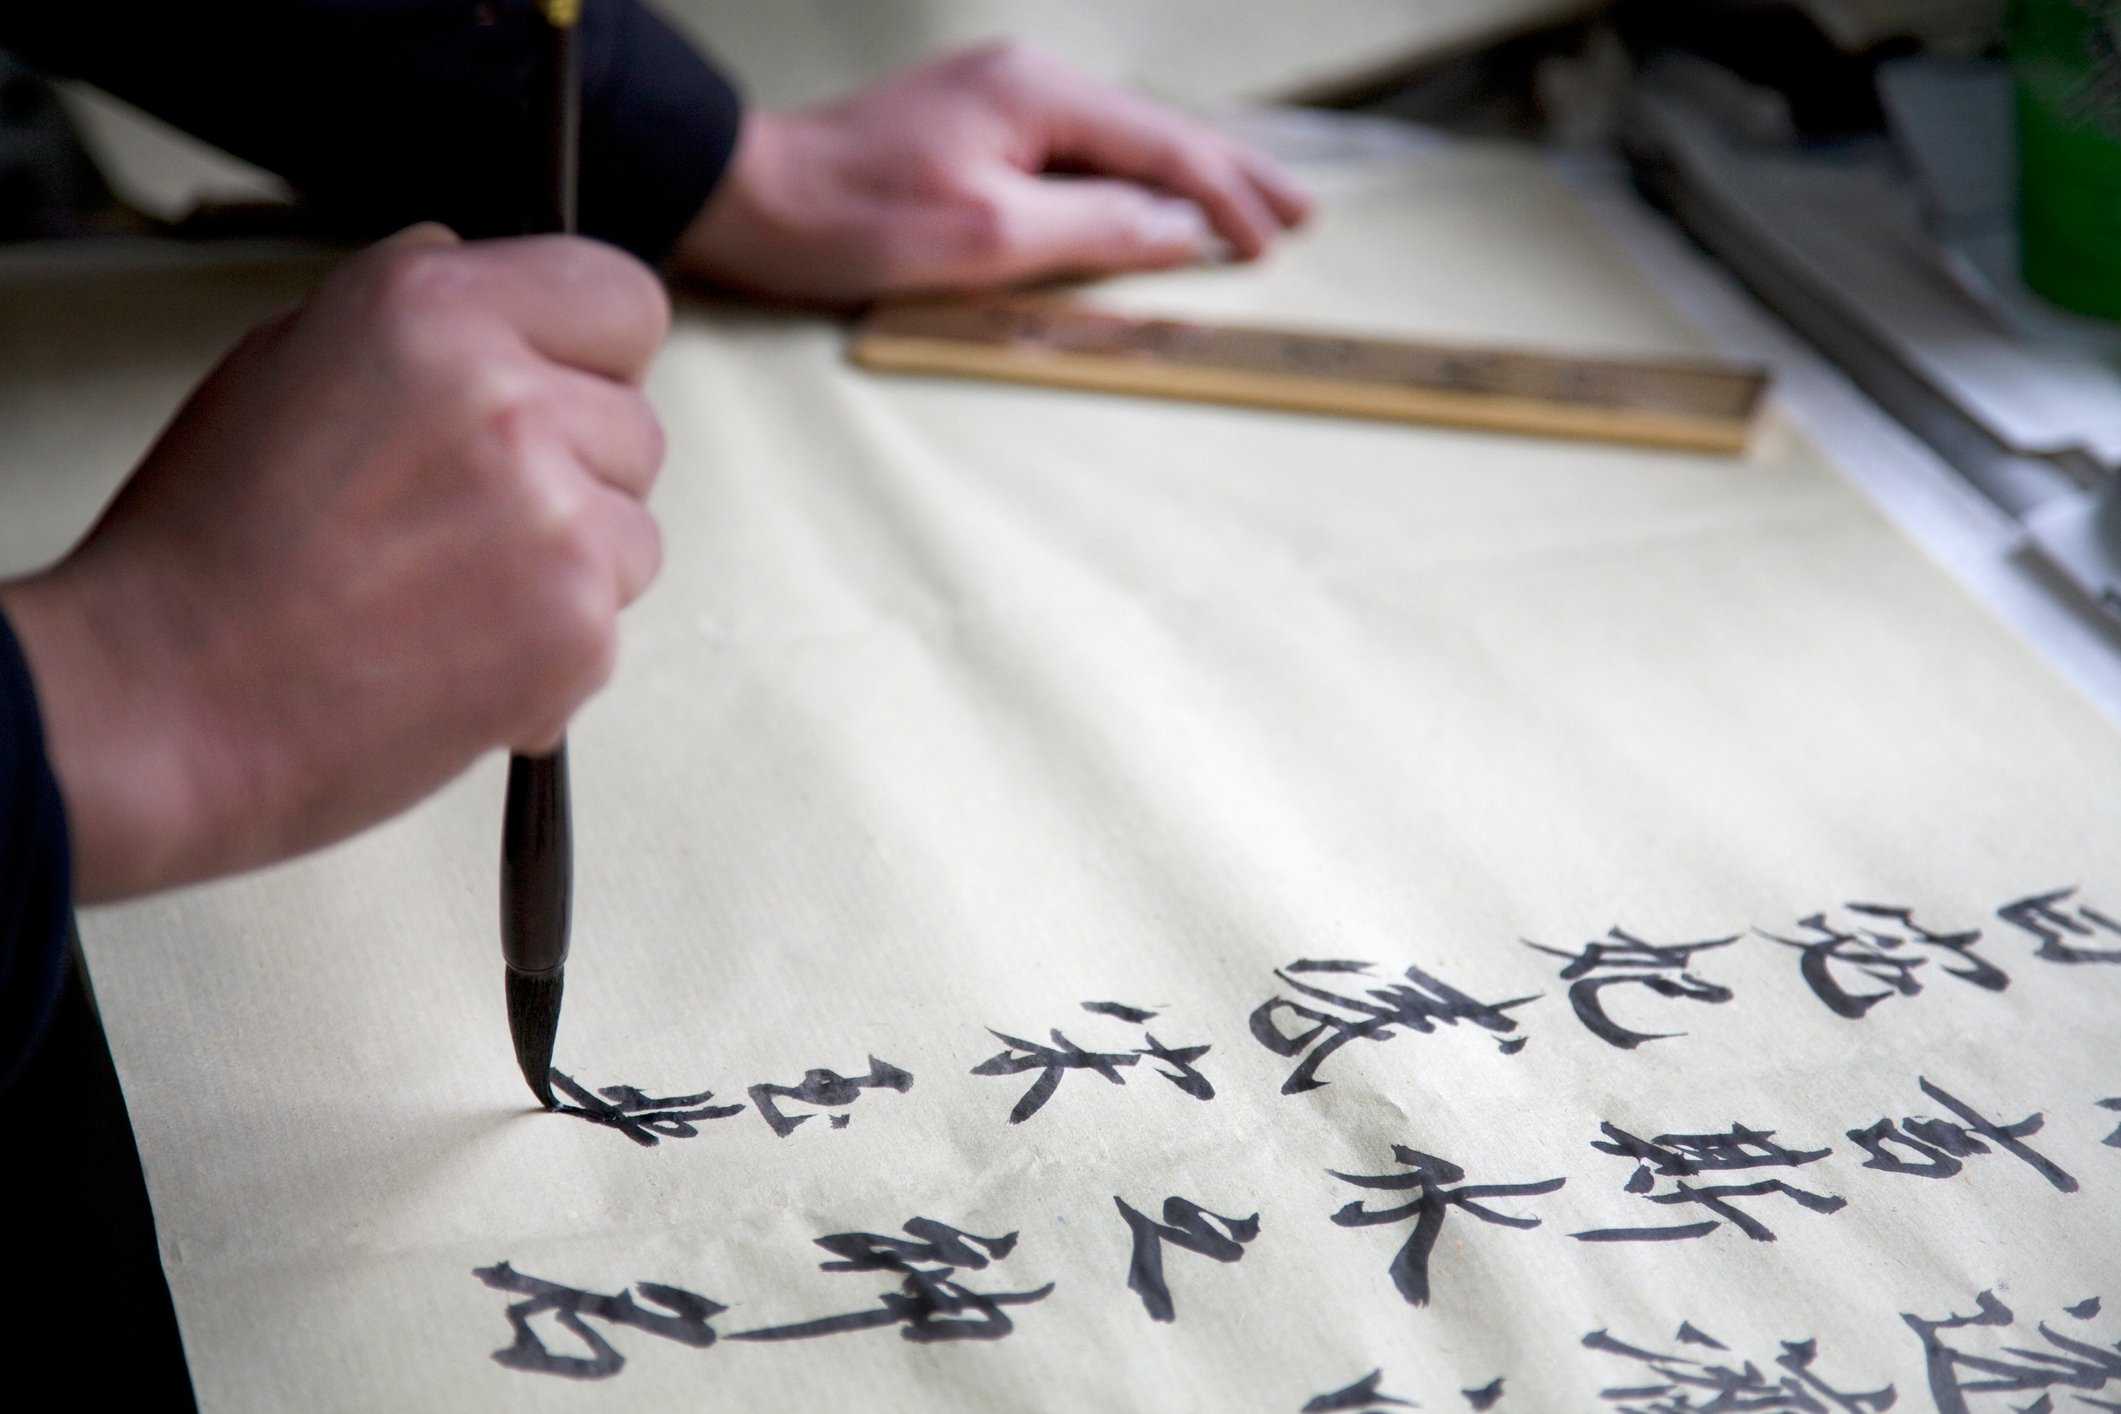 poetry writing using chinese calligraphy and characters.